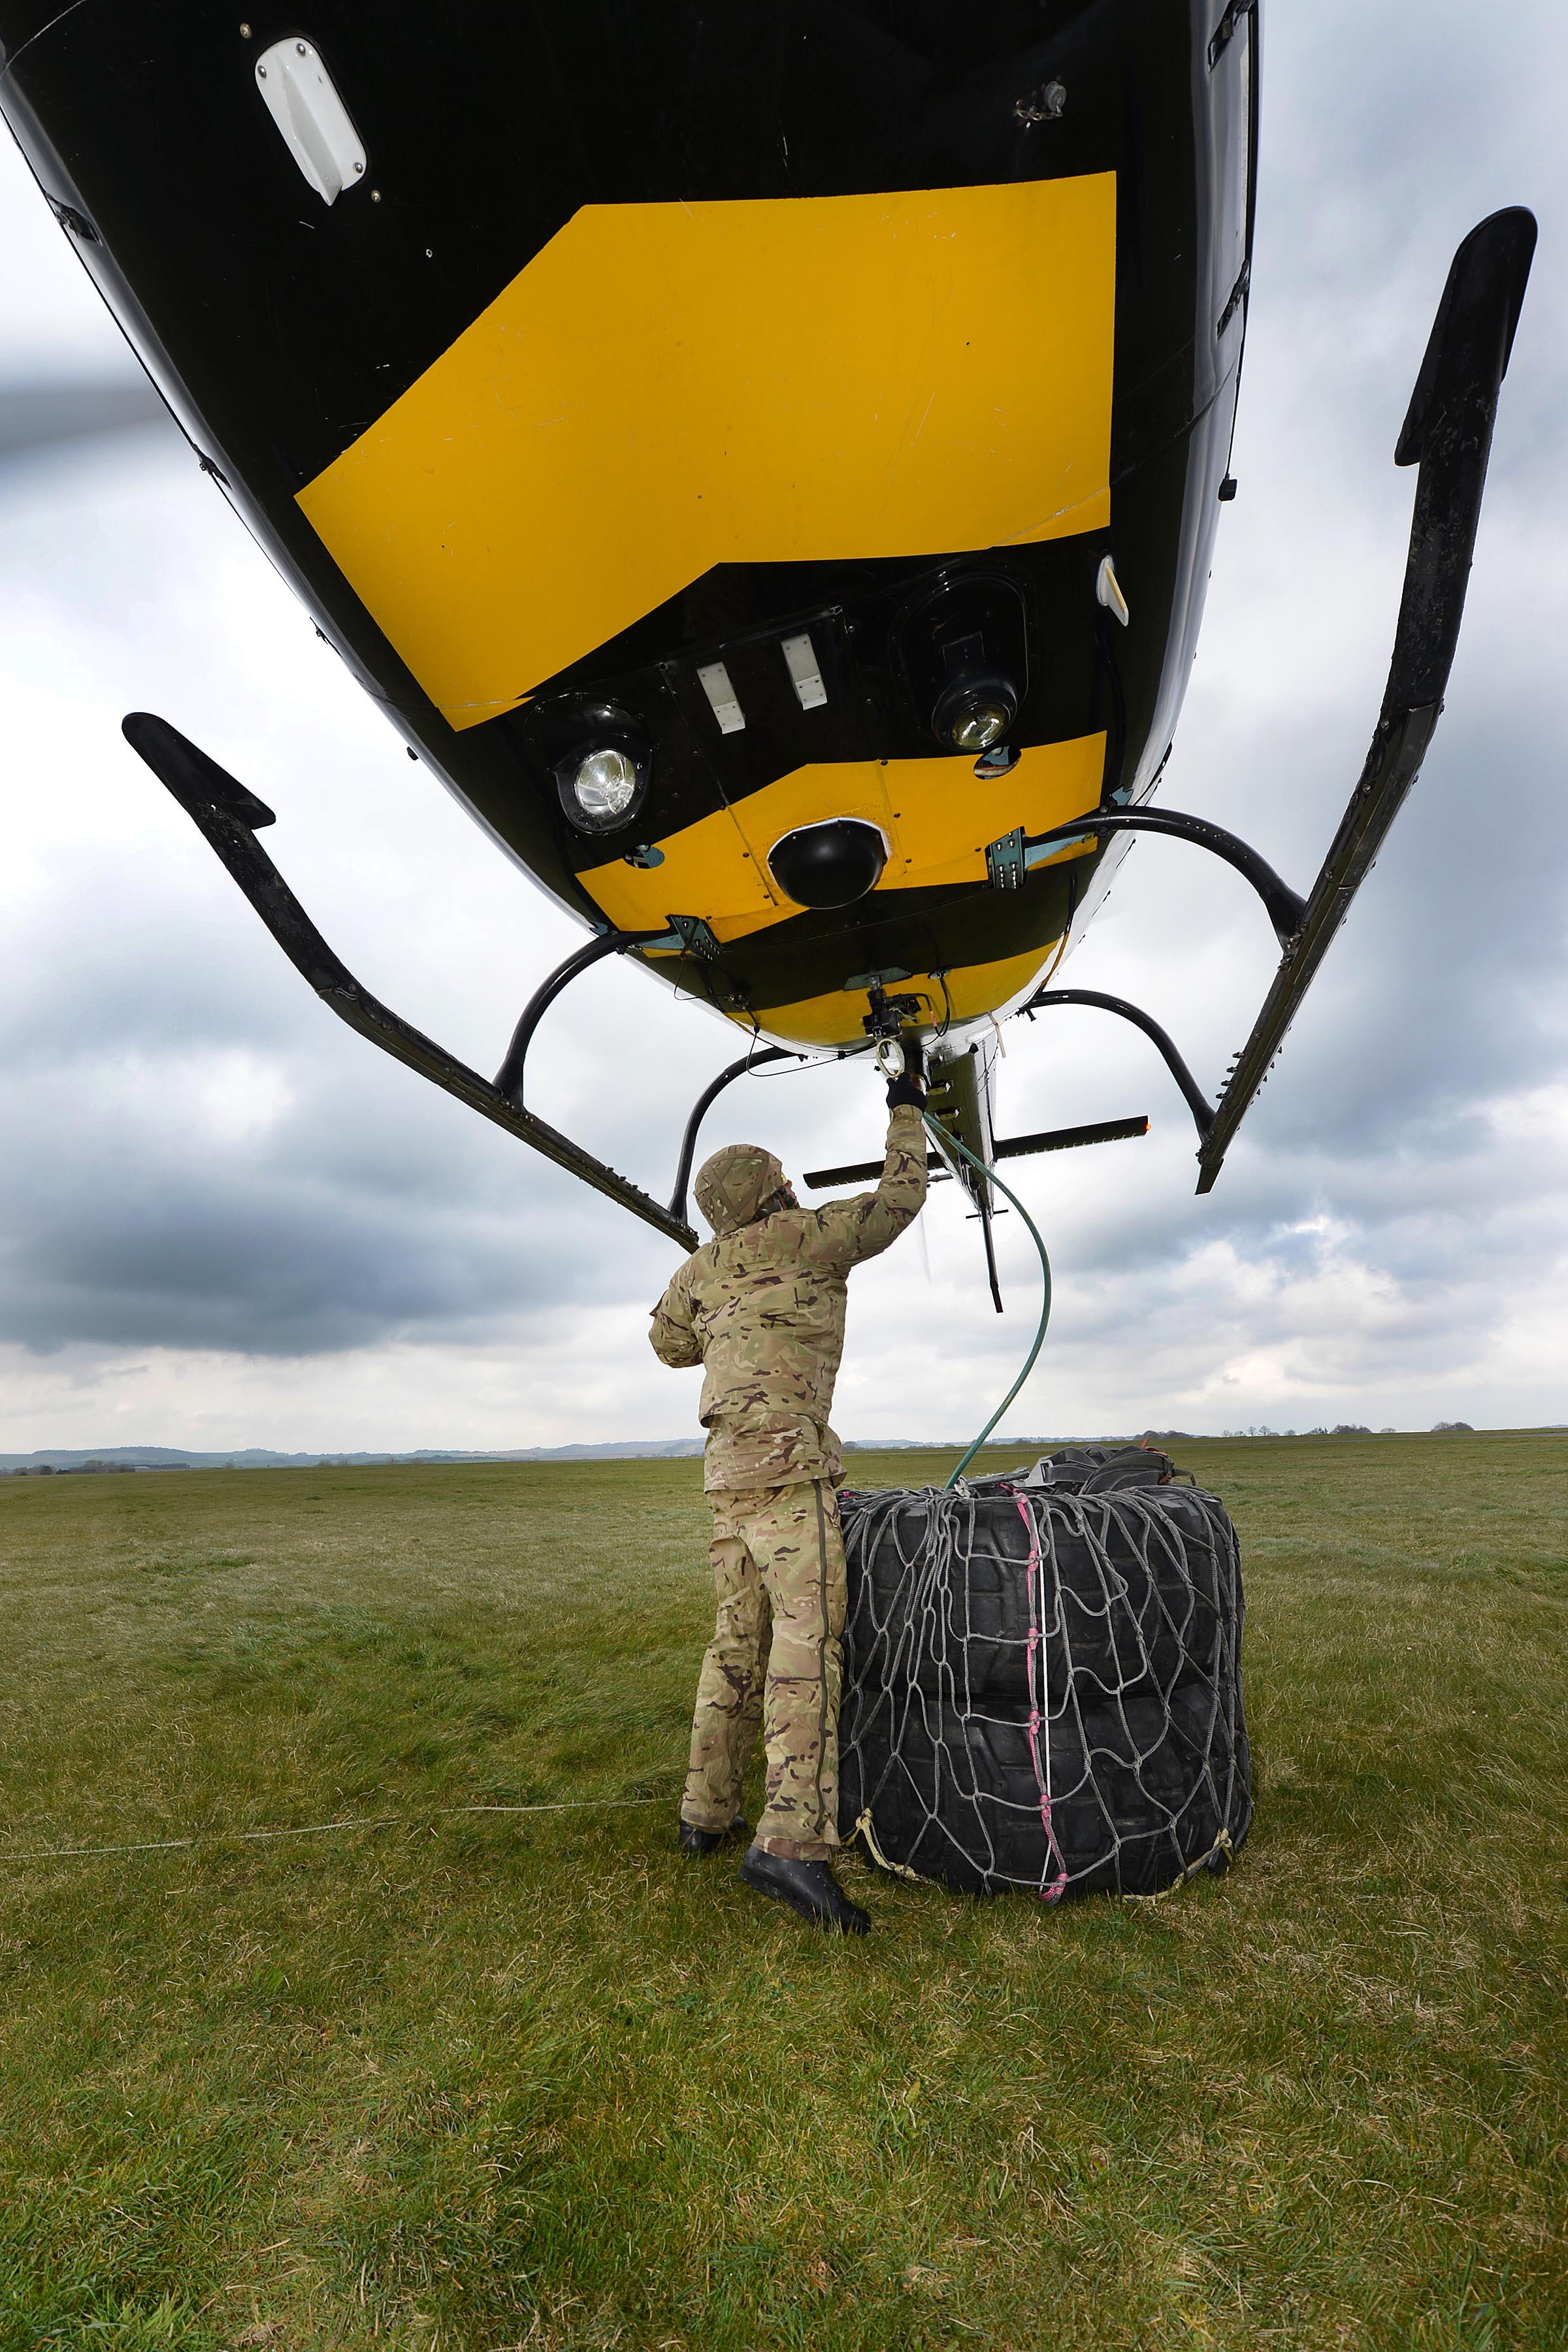 filearmy reserves underslung load training with squirrel helicopter mod 45156920jpg - Helicopter Mod